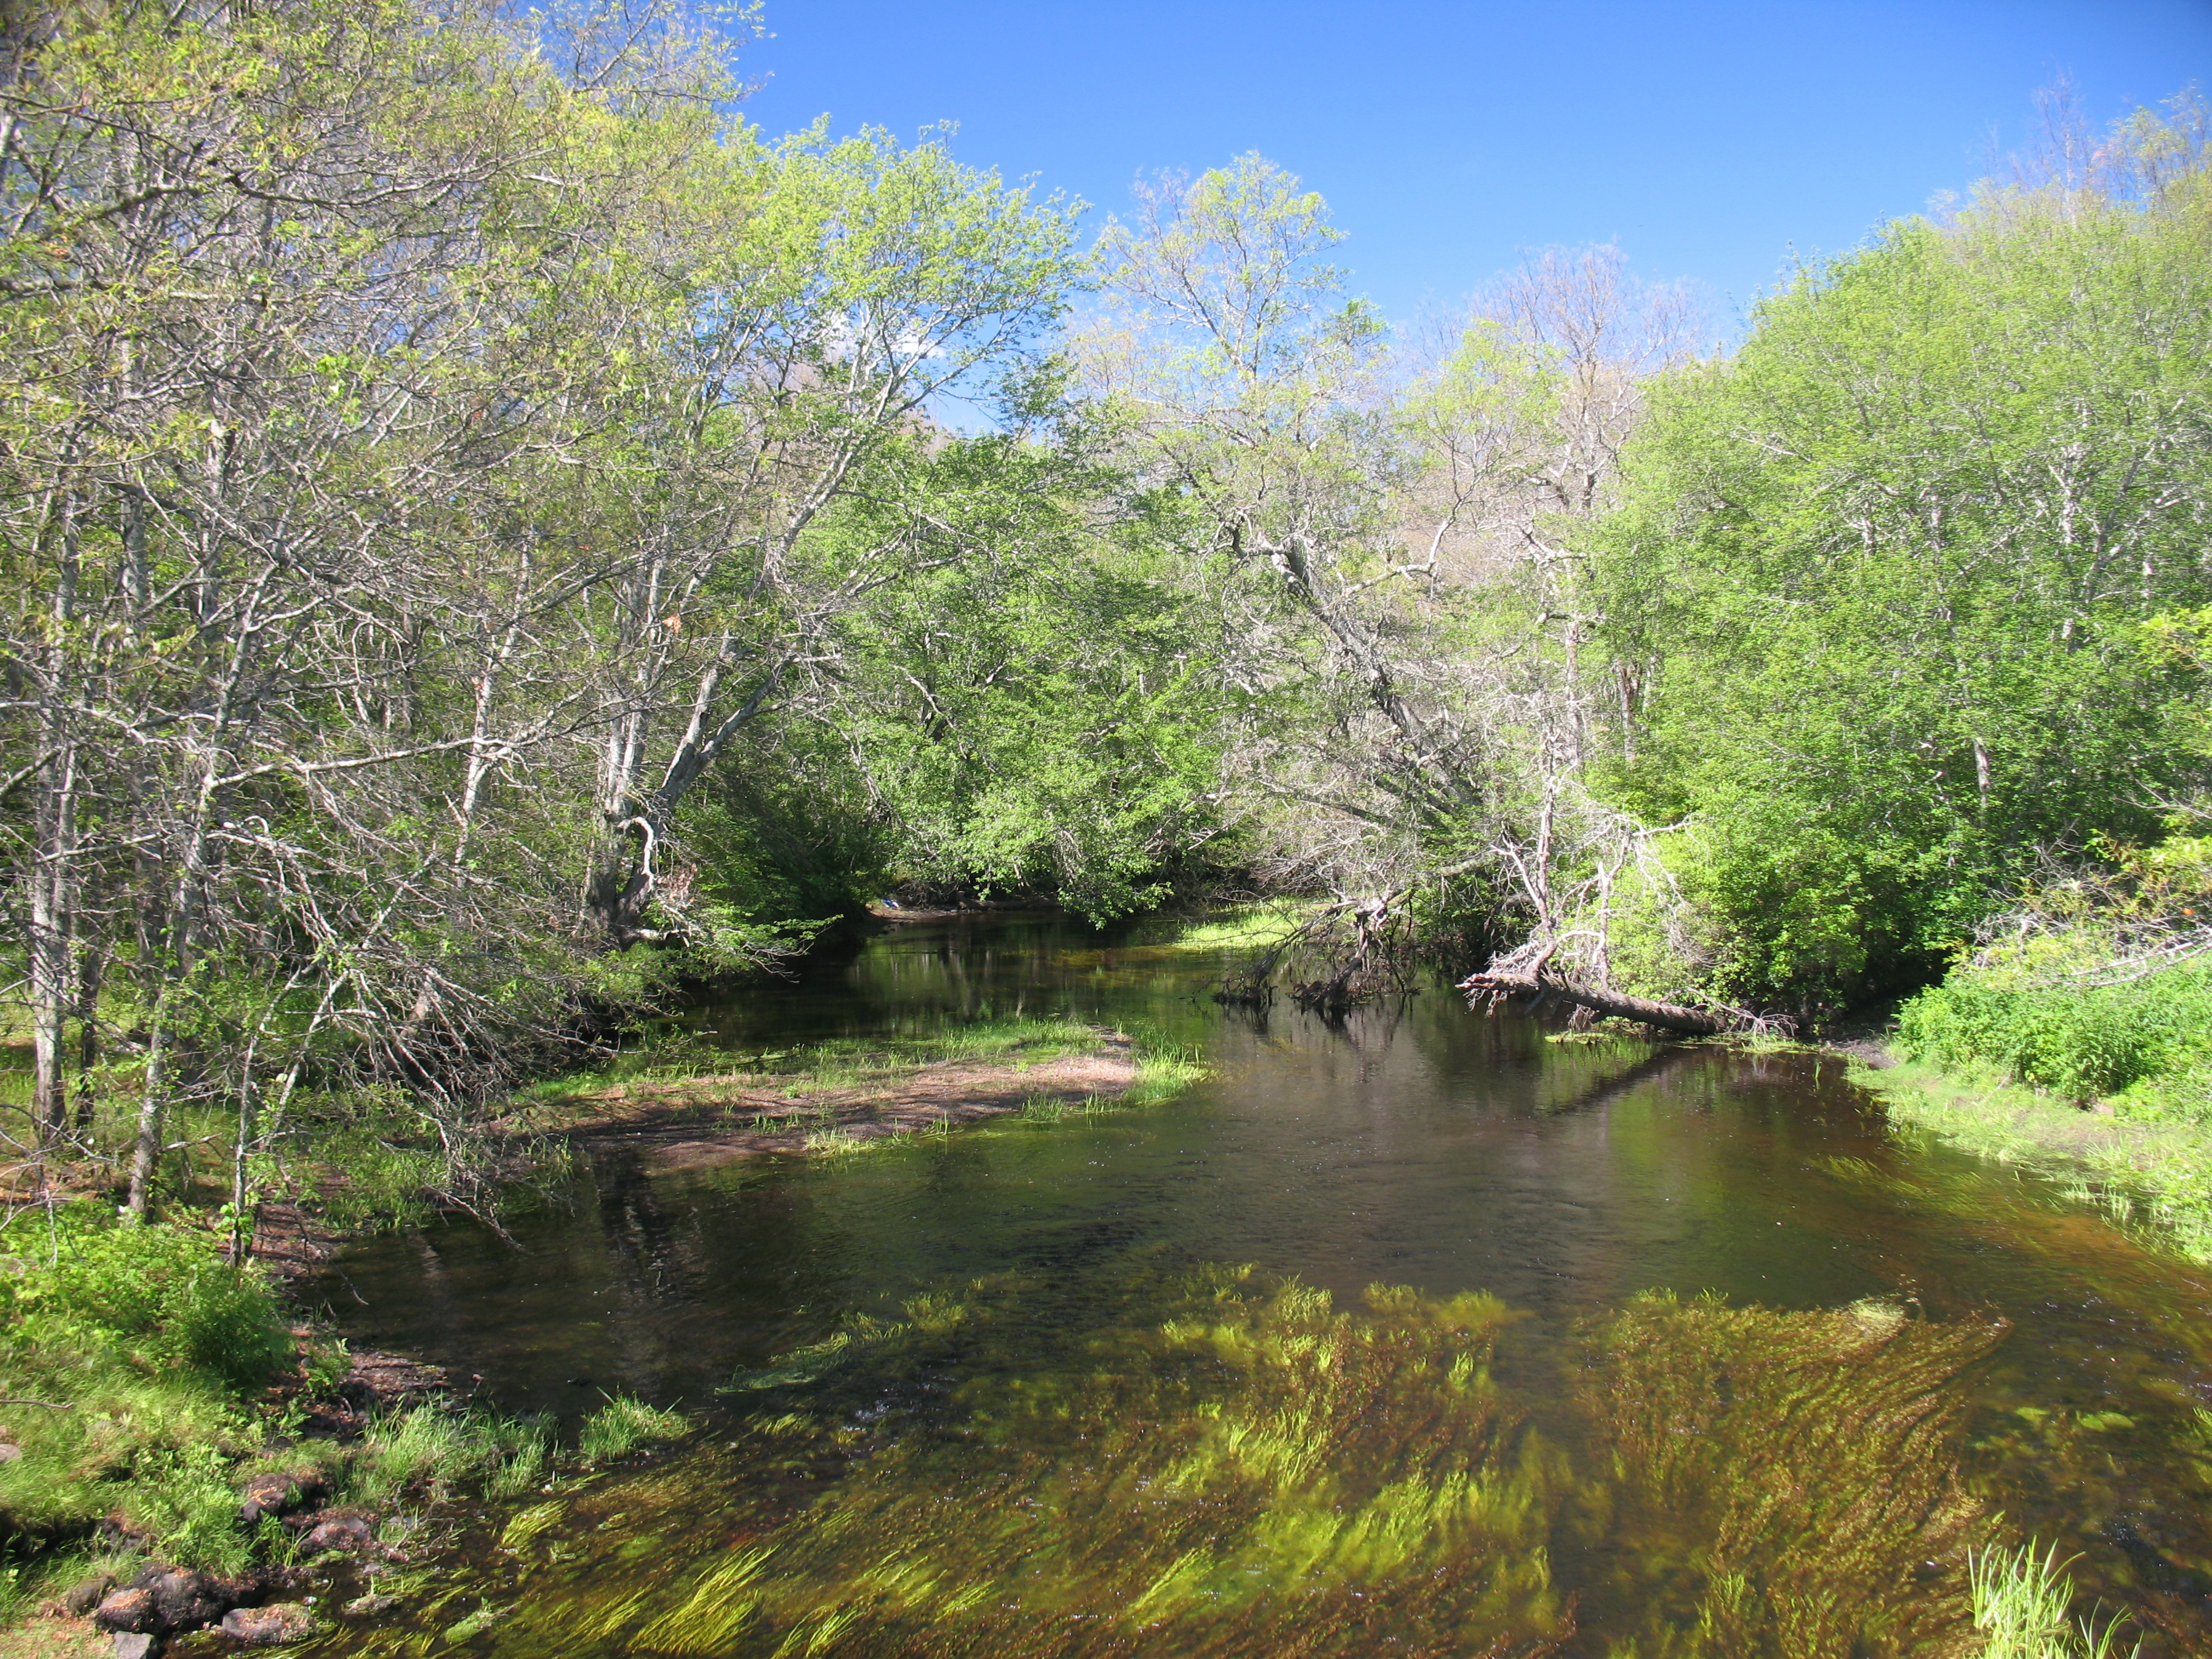 Rhode Island North South Trail: 78 Miles From the Atlantic Ocean to Massachusetts